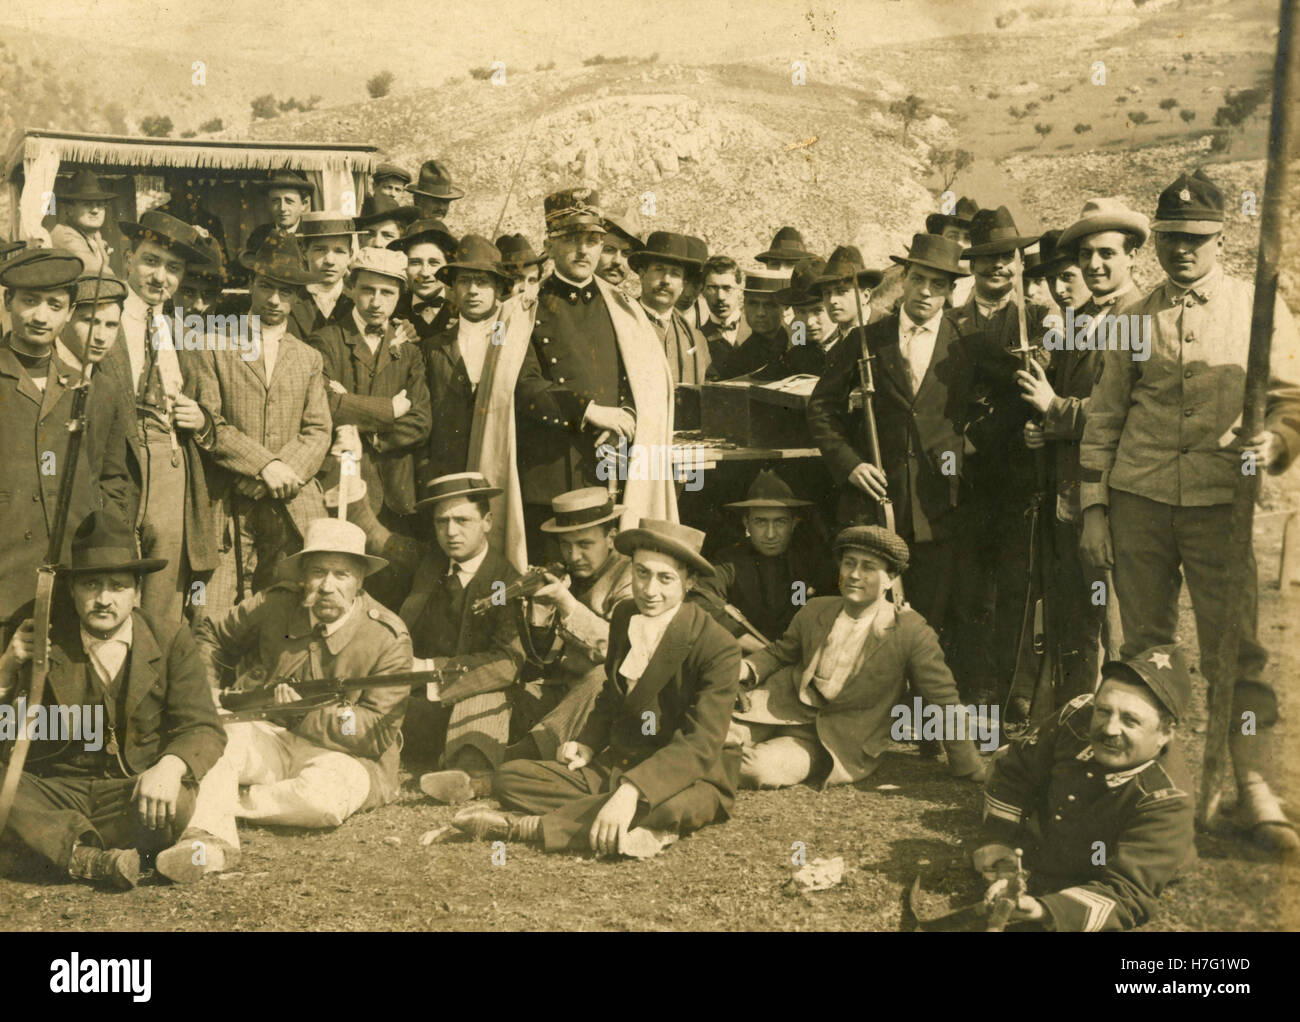 Group of shooters at the shooting range, Italy 1908 - Stock Image